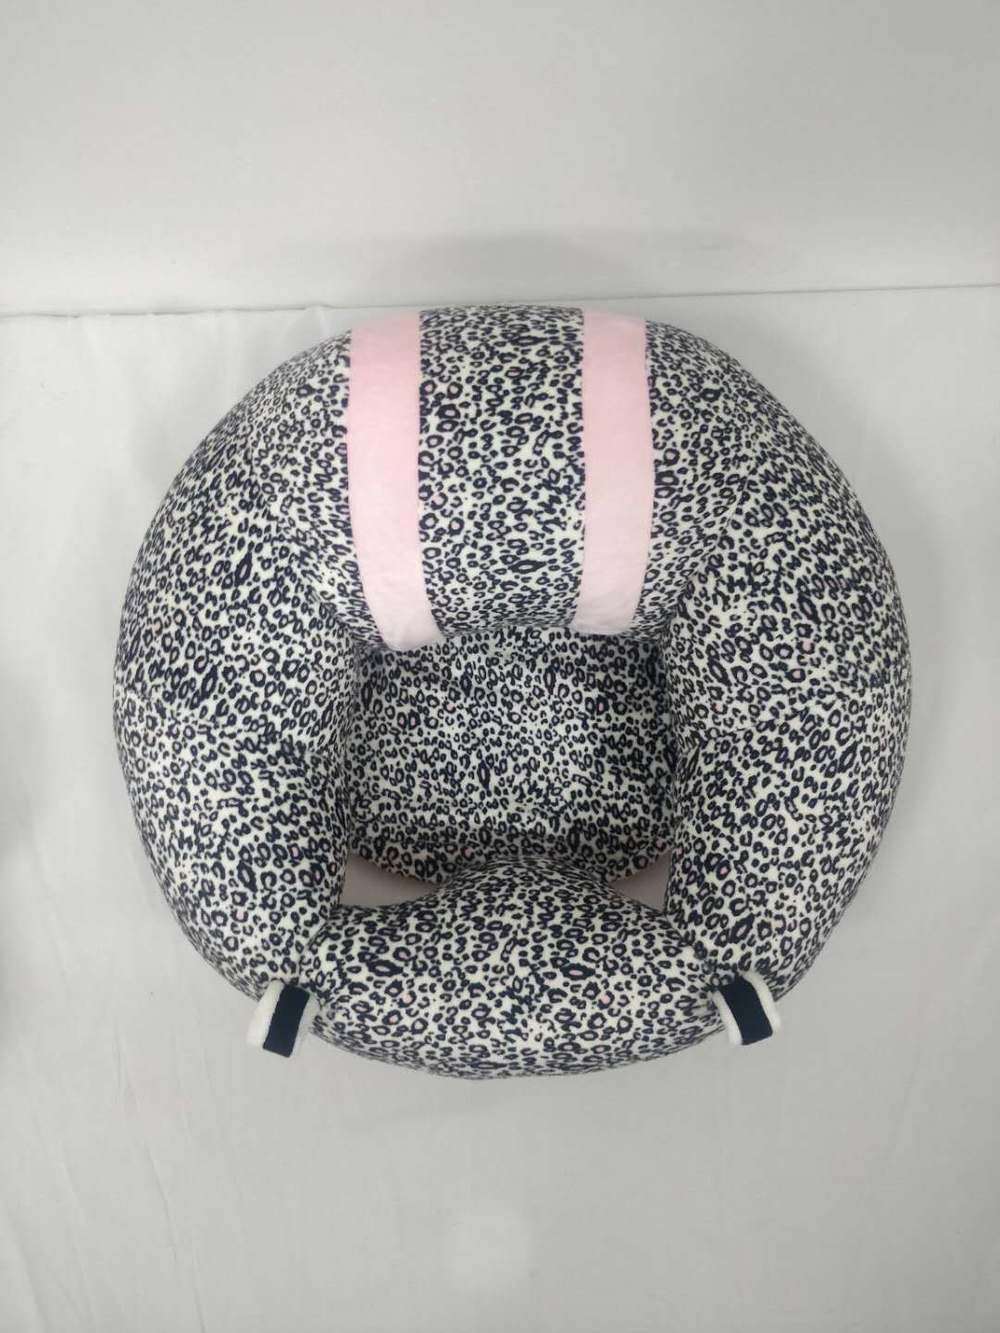 Baby Support Seat, Baby Learning Chair, Sofa Cushion Plush Toy